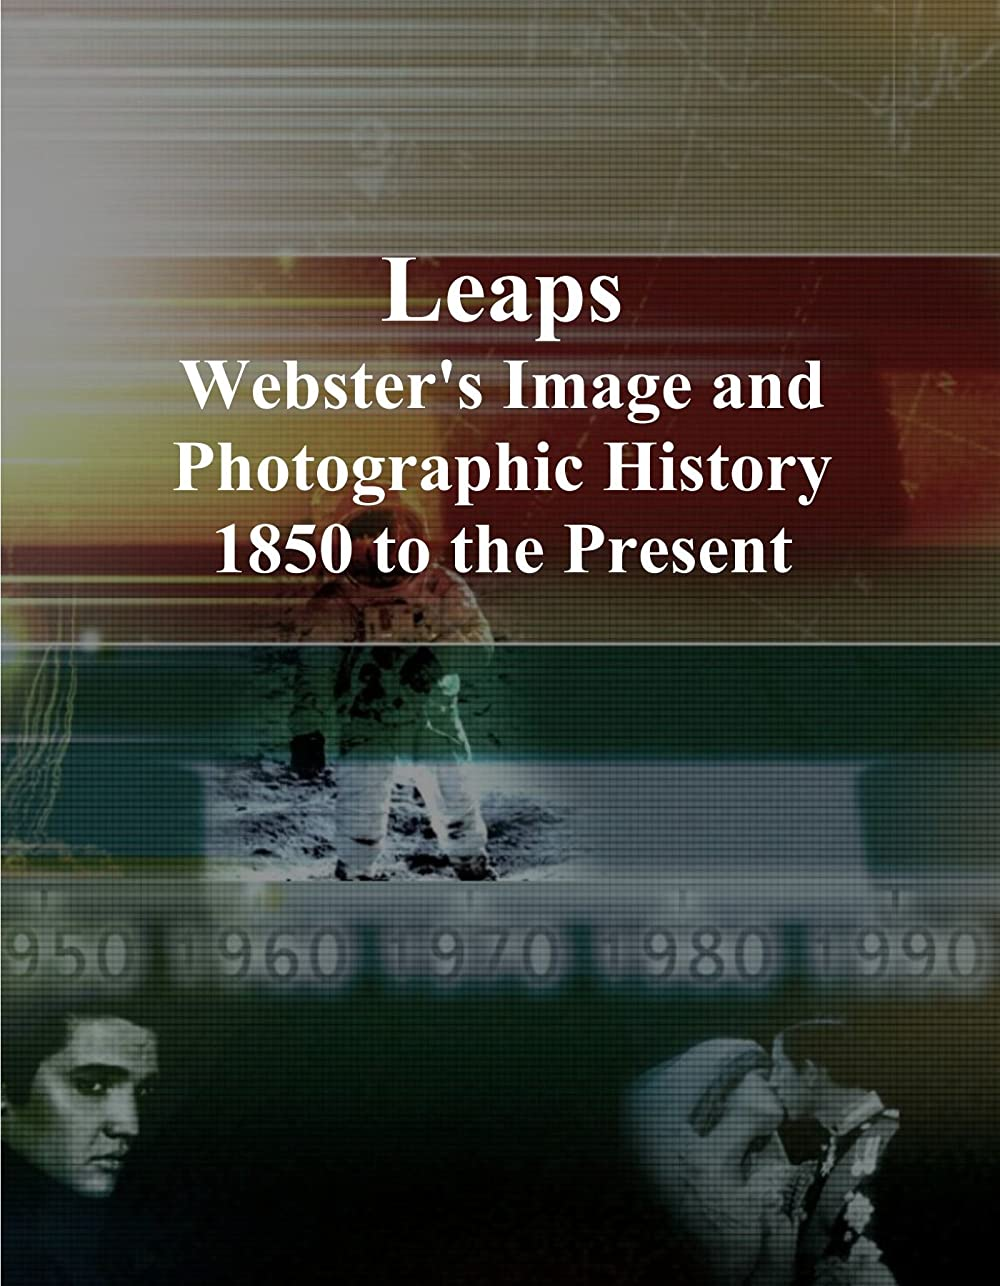 マトロン繰り返すタックルLeaps: Webster's Image and Photographic History, 1850 to the Present